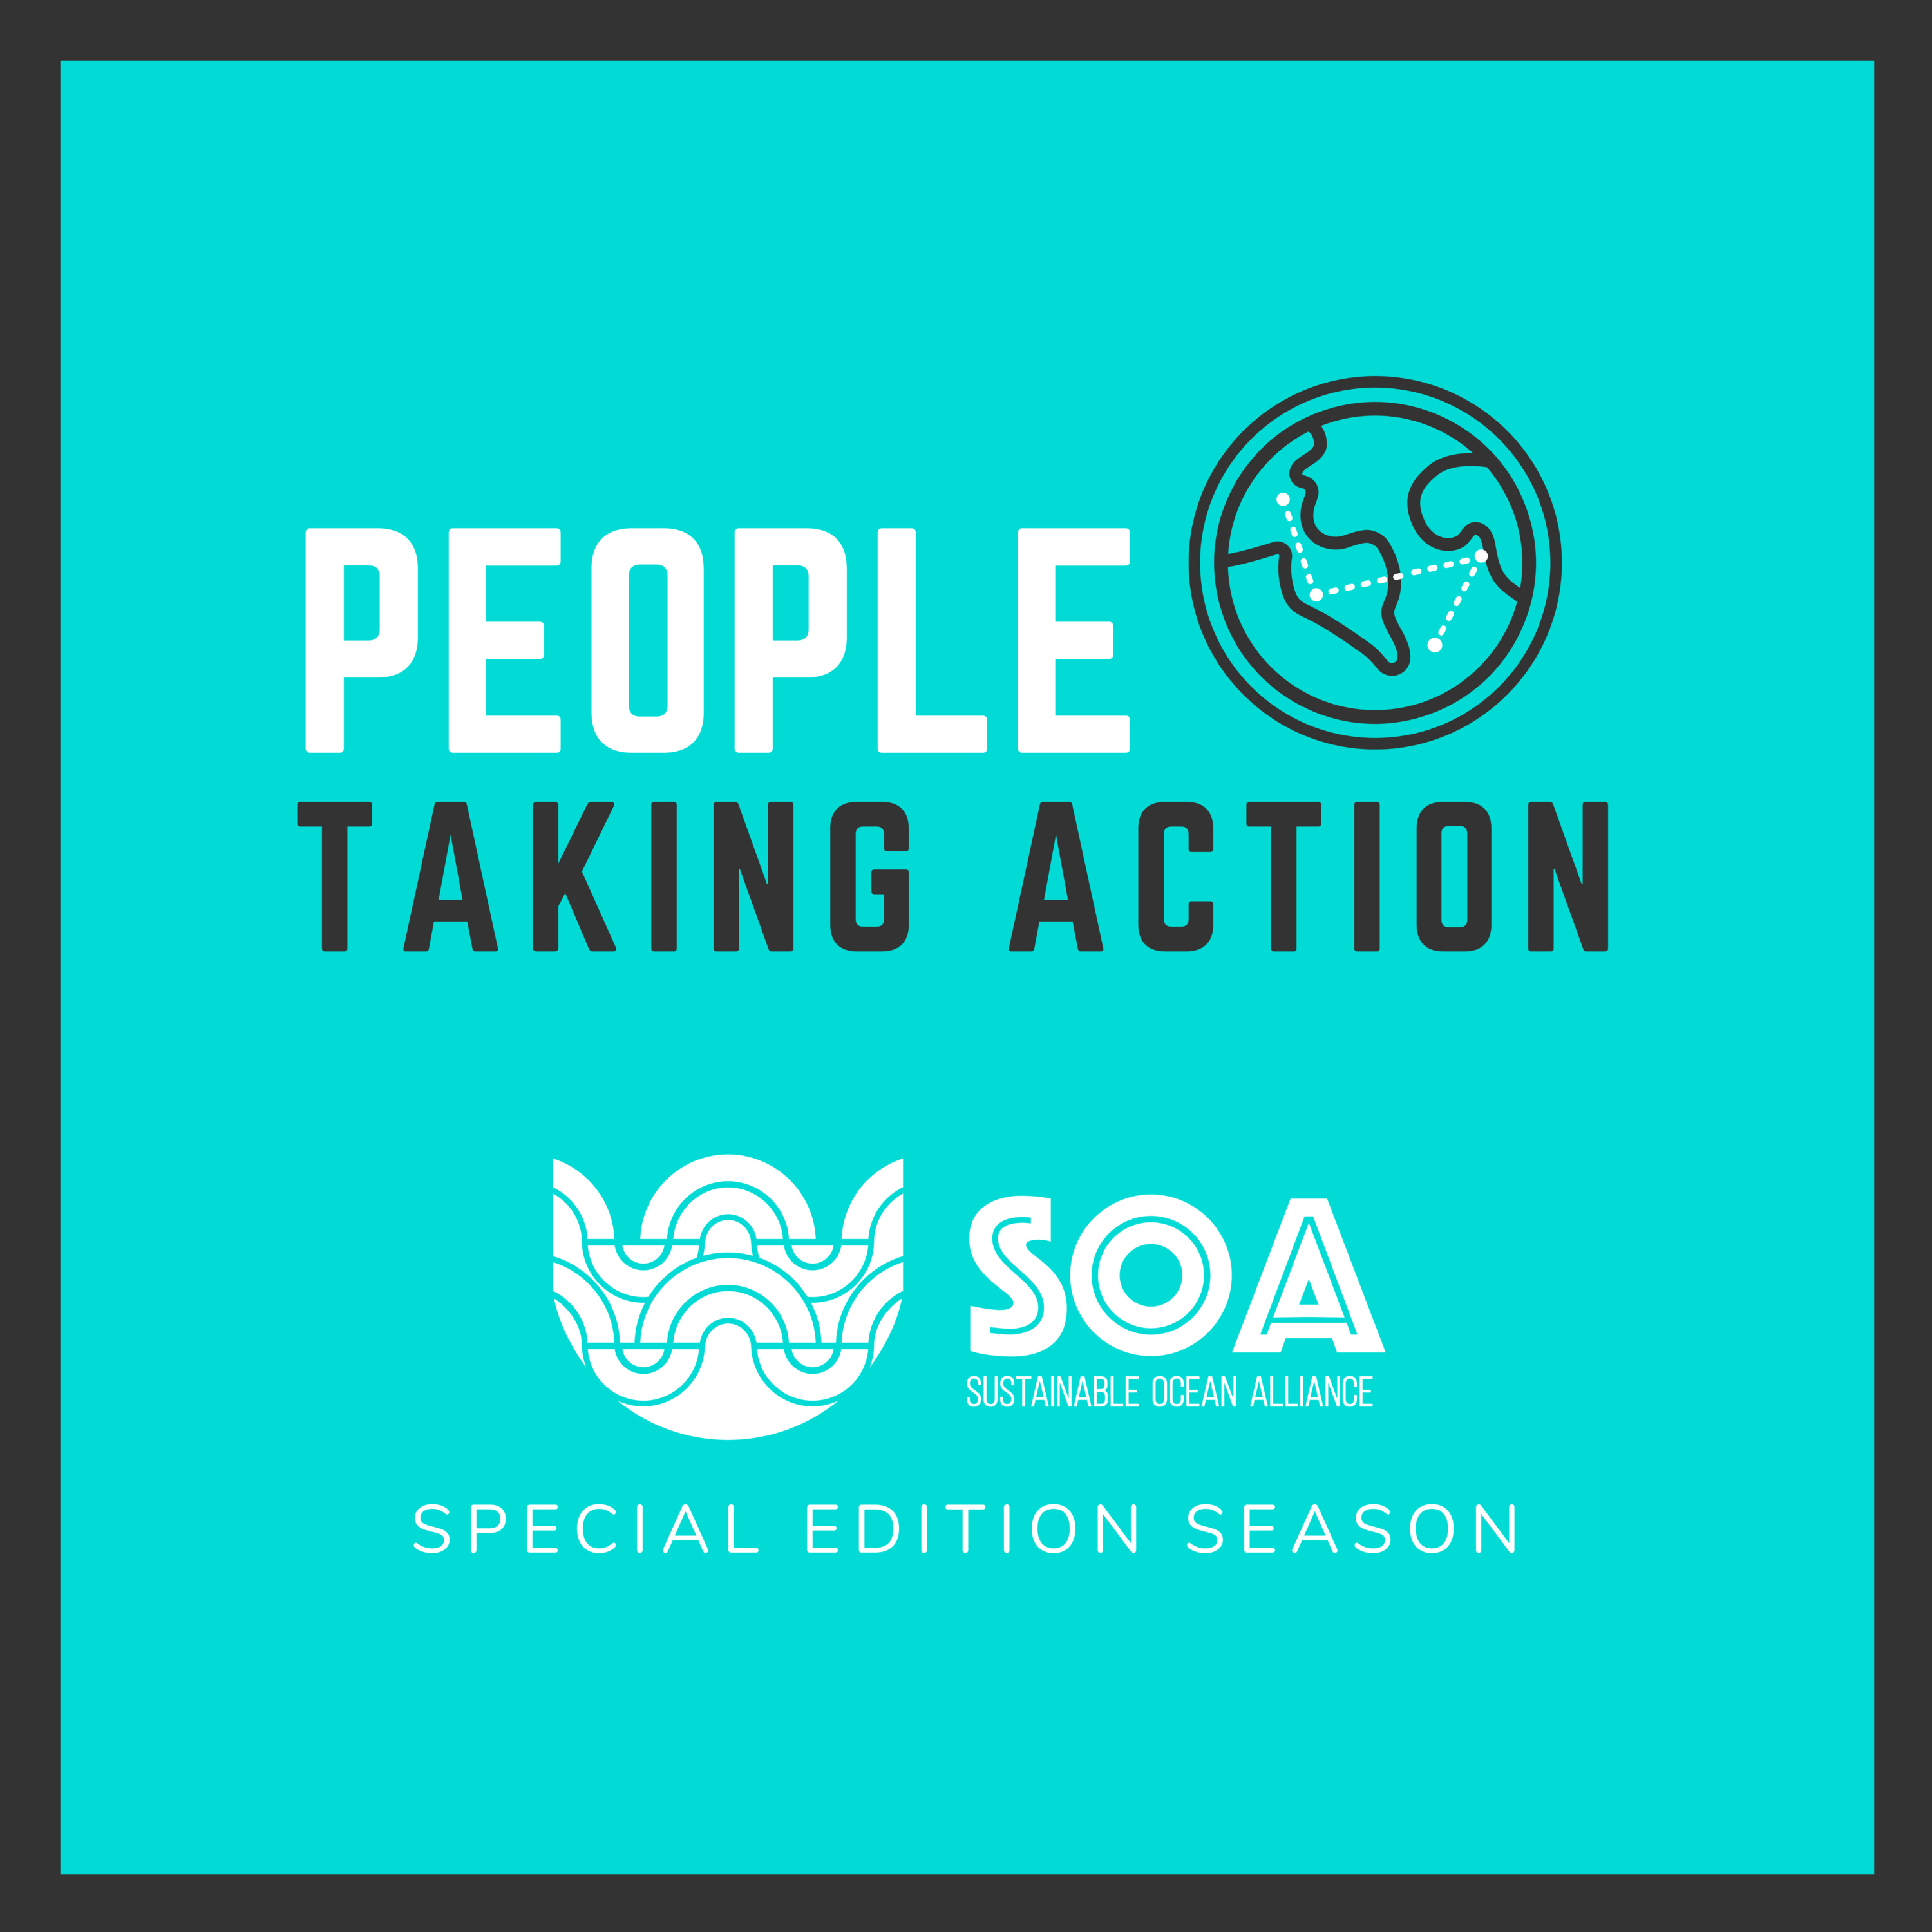 People Taking Action